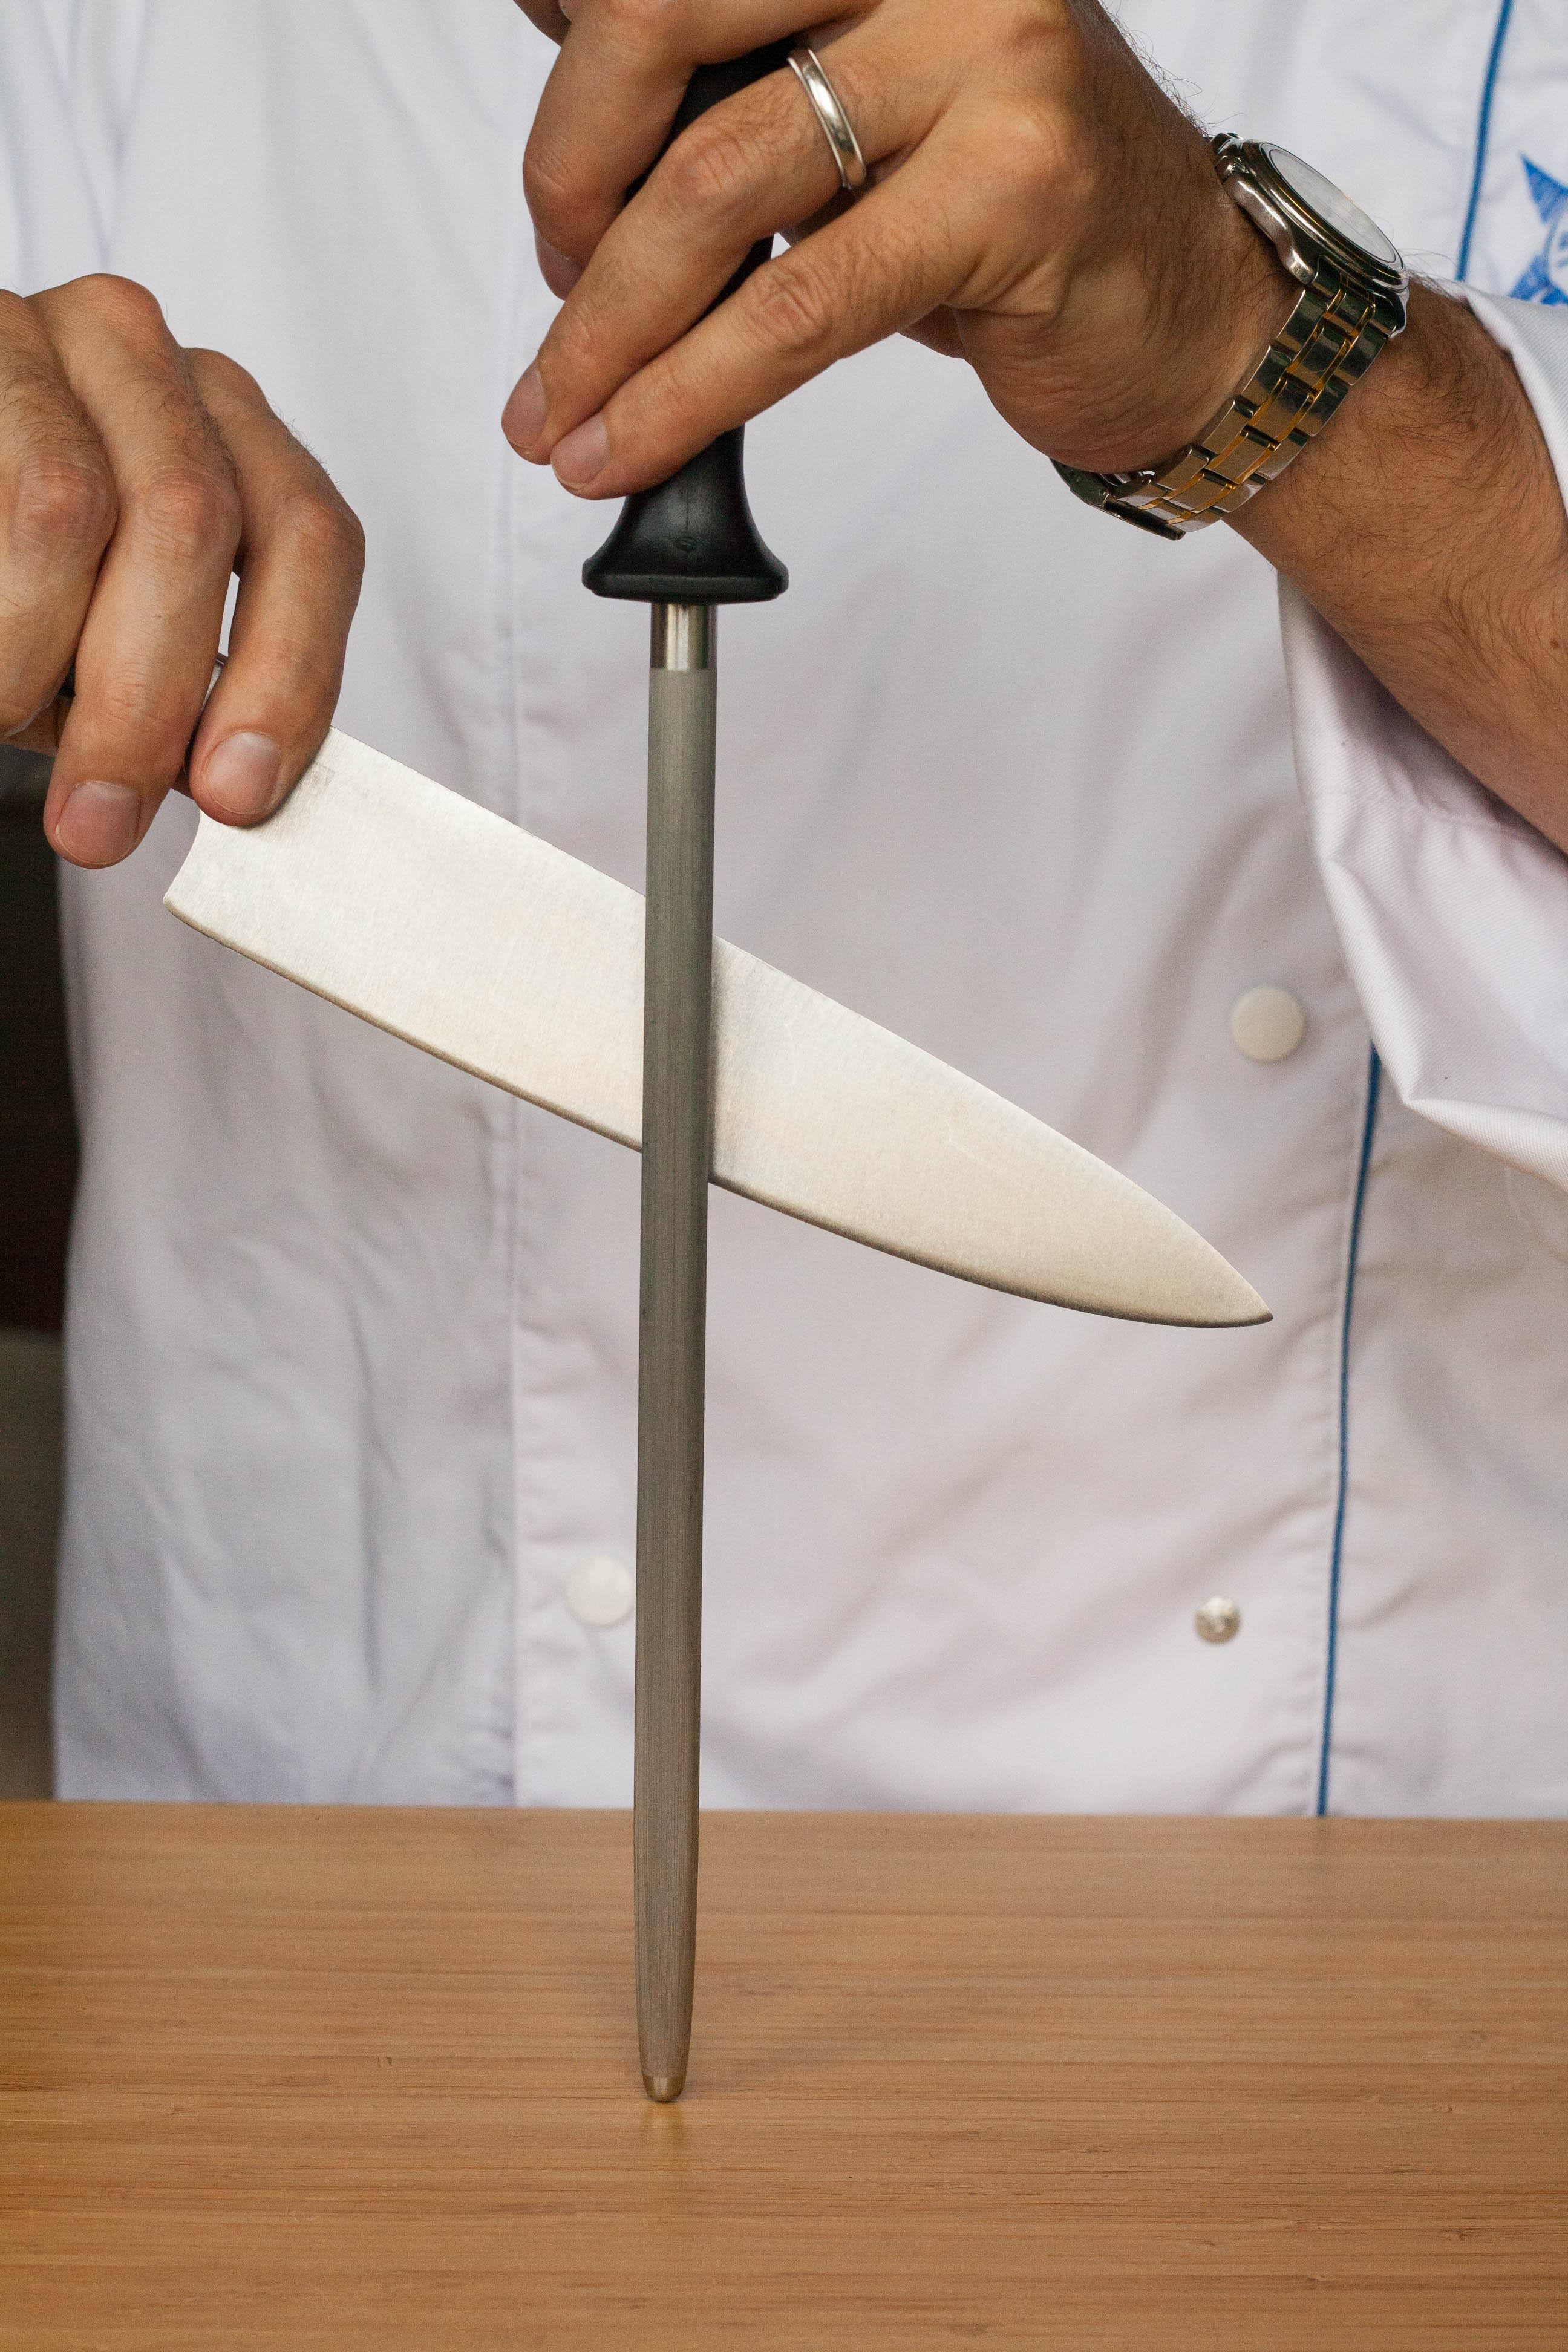 This Tool Does Not Actually Sharpen Your Knife. Here's ...